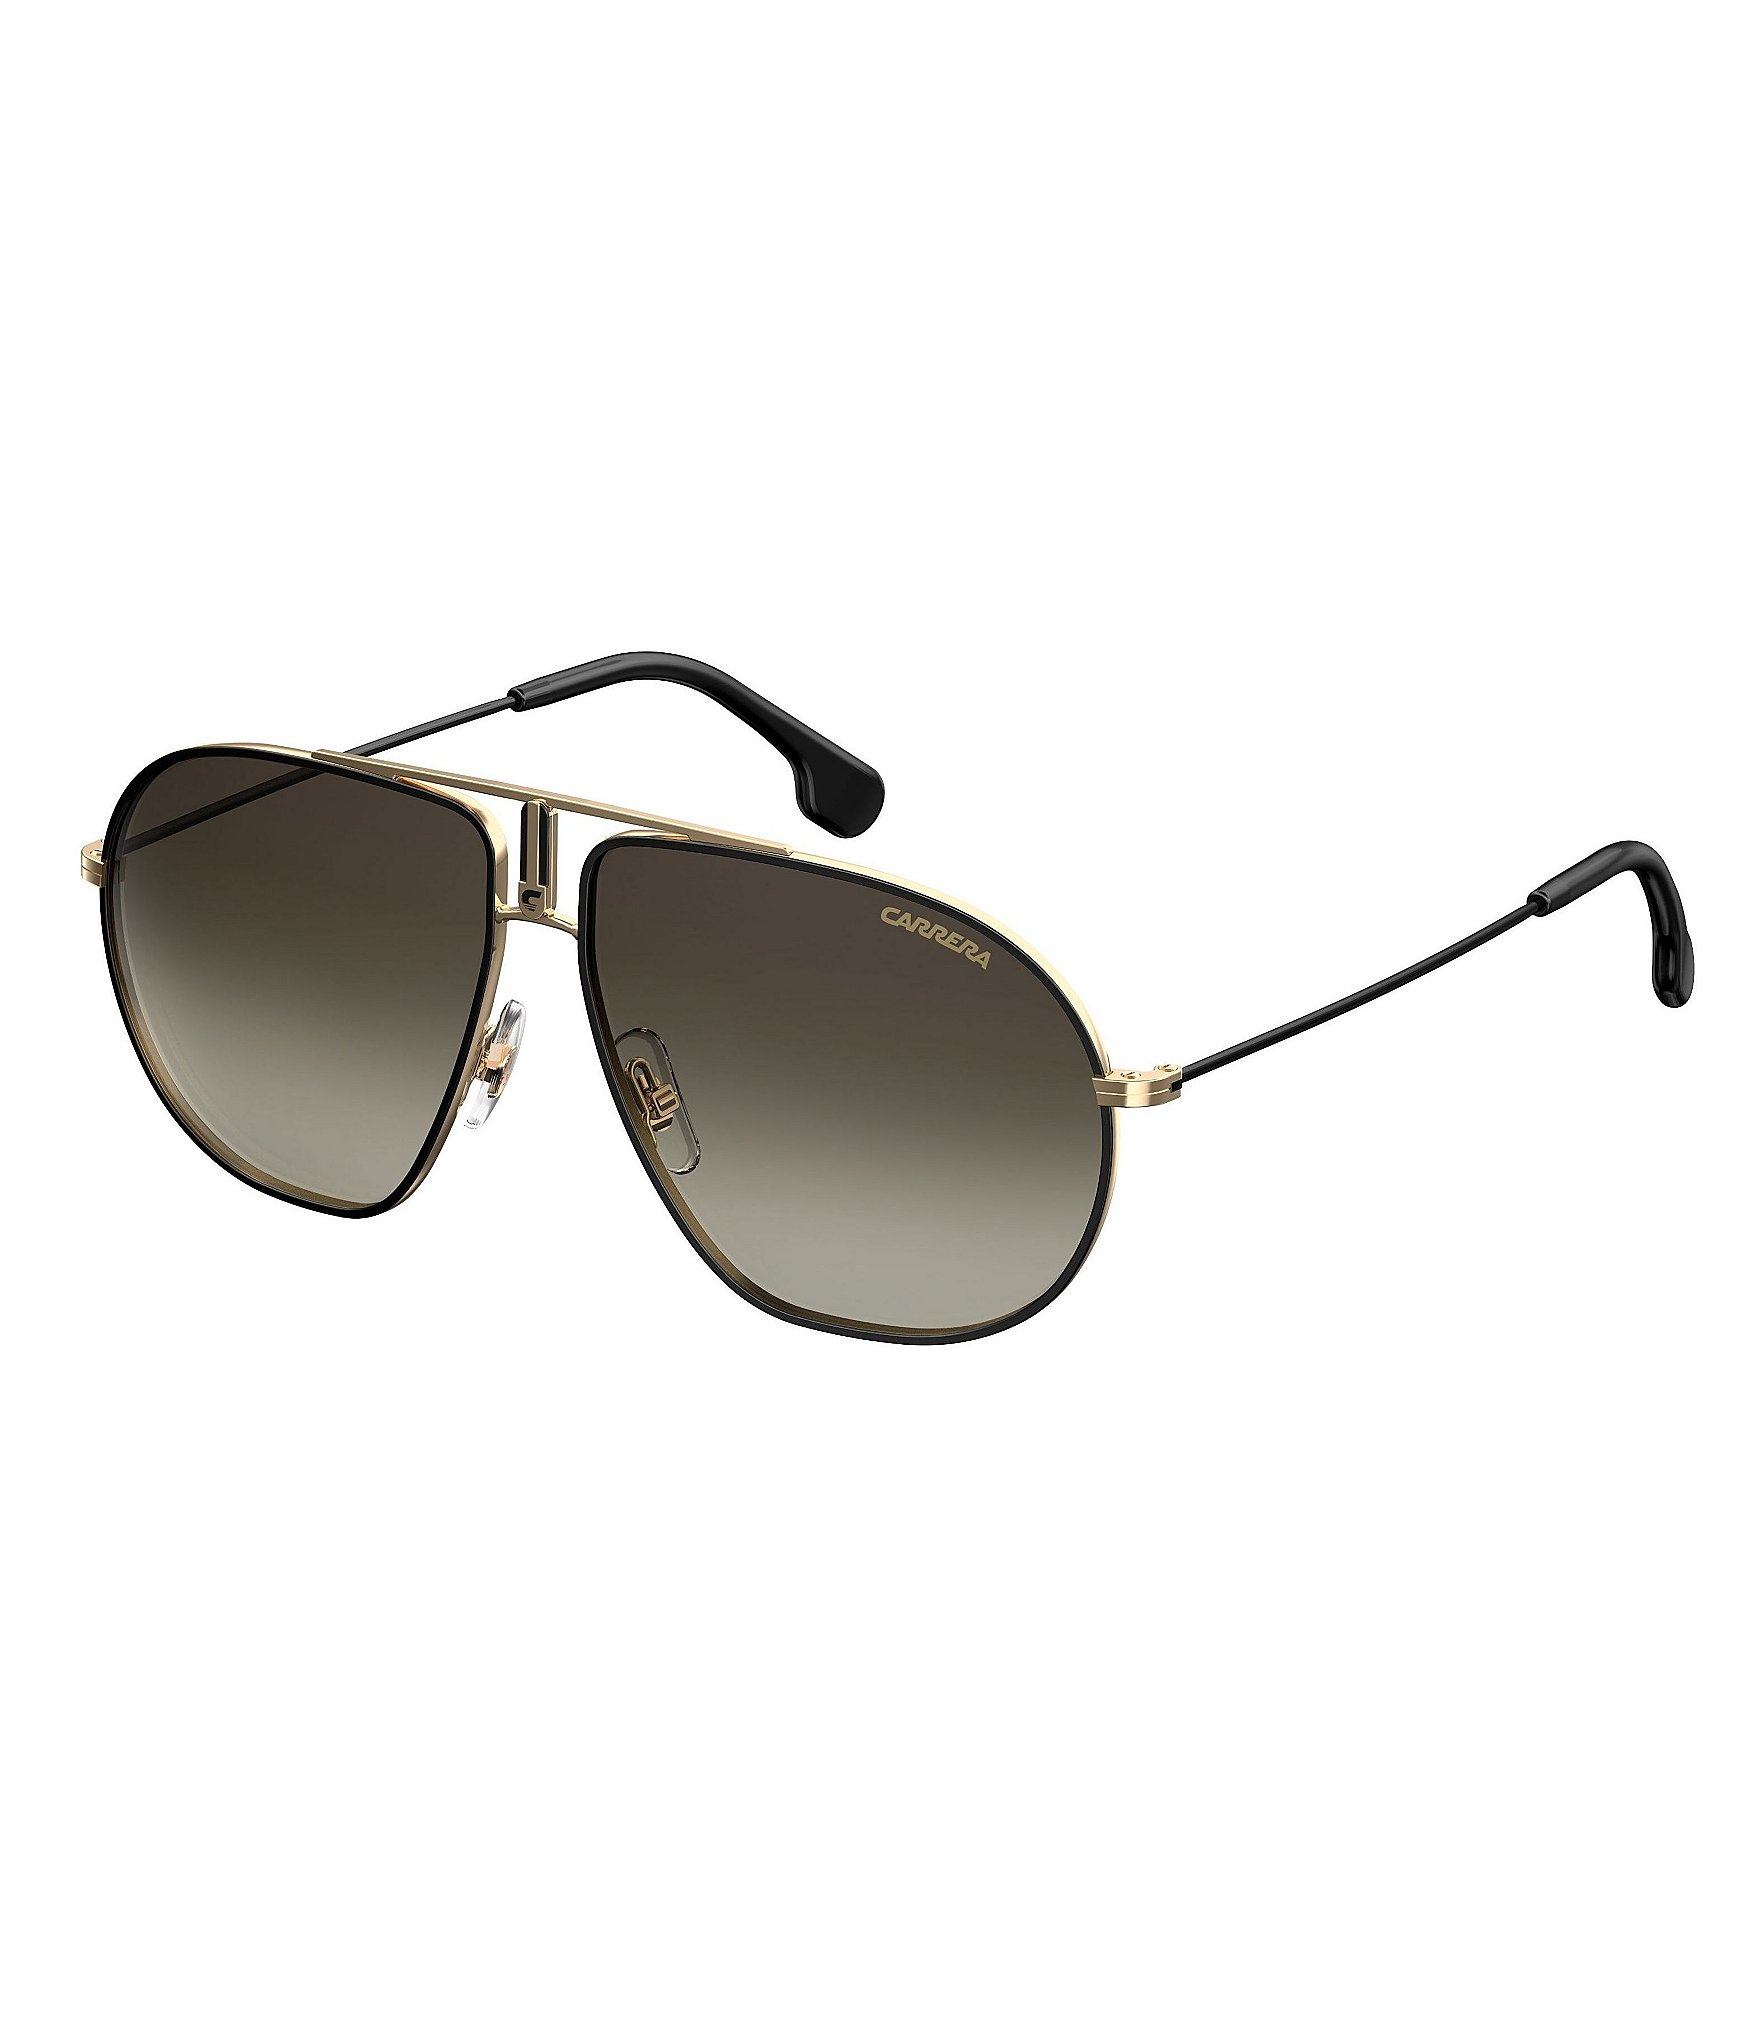 c17f061d8c D g Gradient Aviator Sunglasses